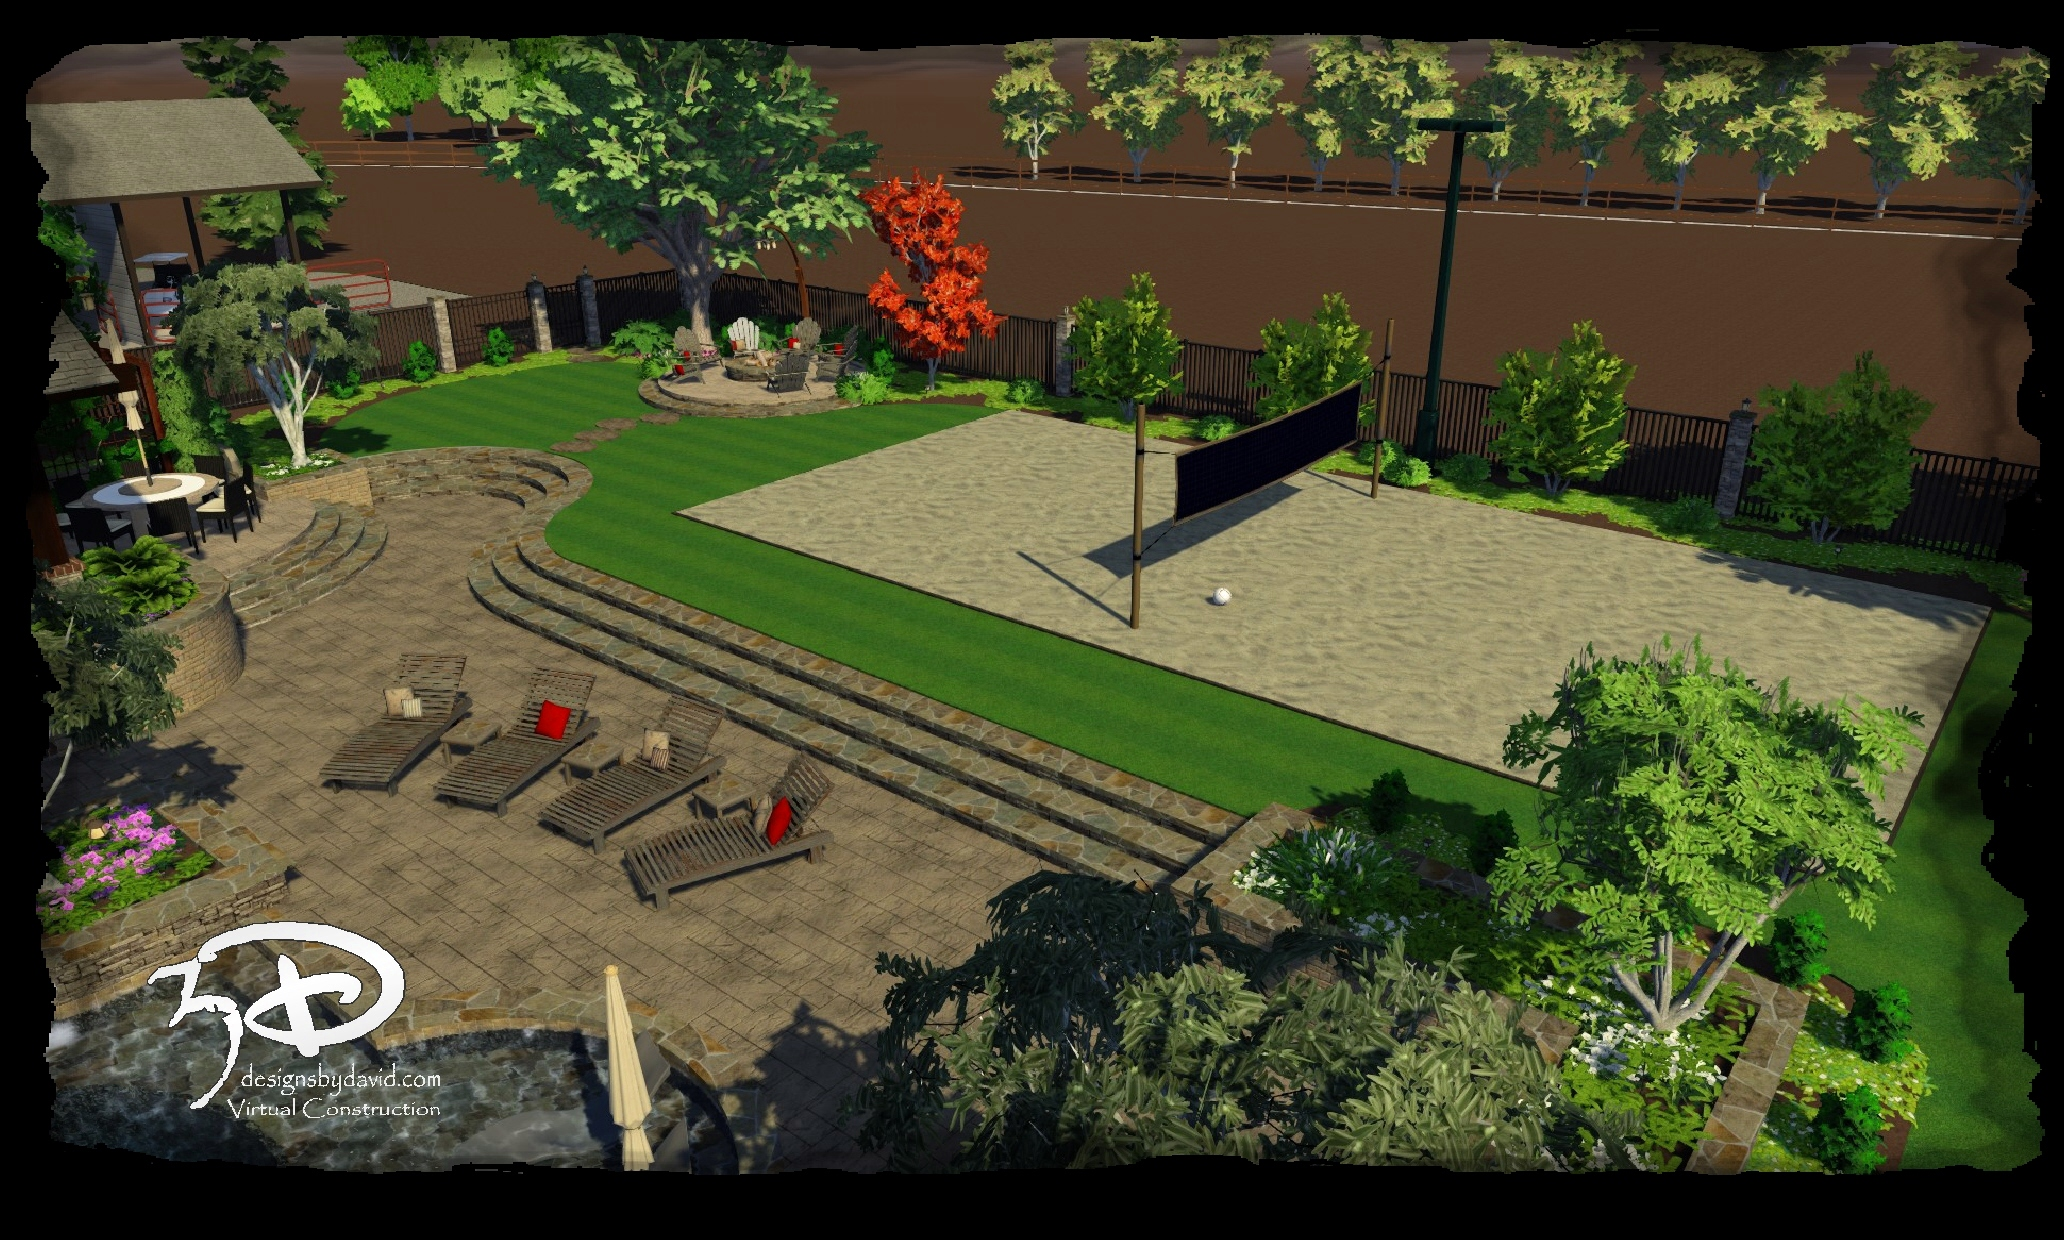 HHH2 - 3D Designs By David on Hhh Outdoor Living id=82343